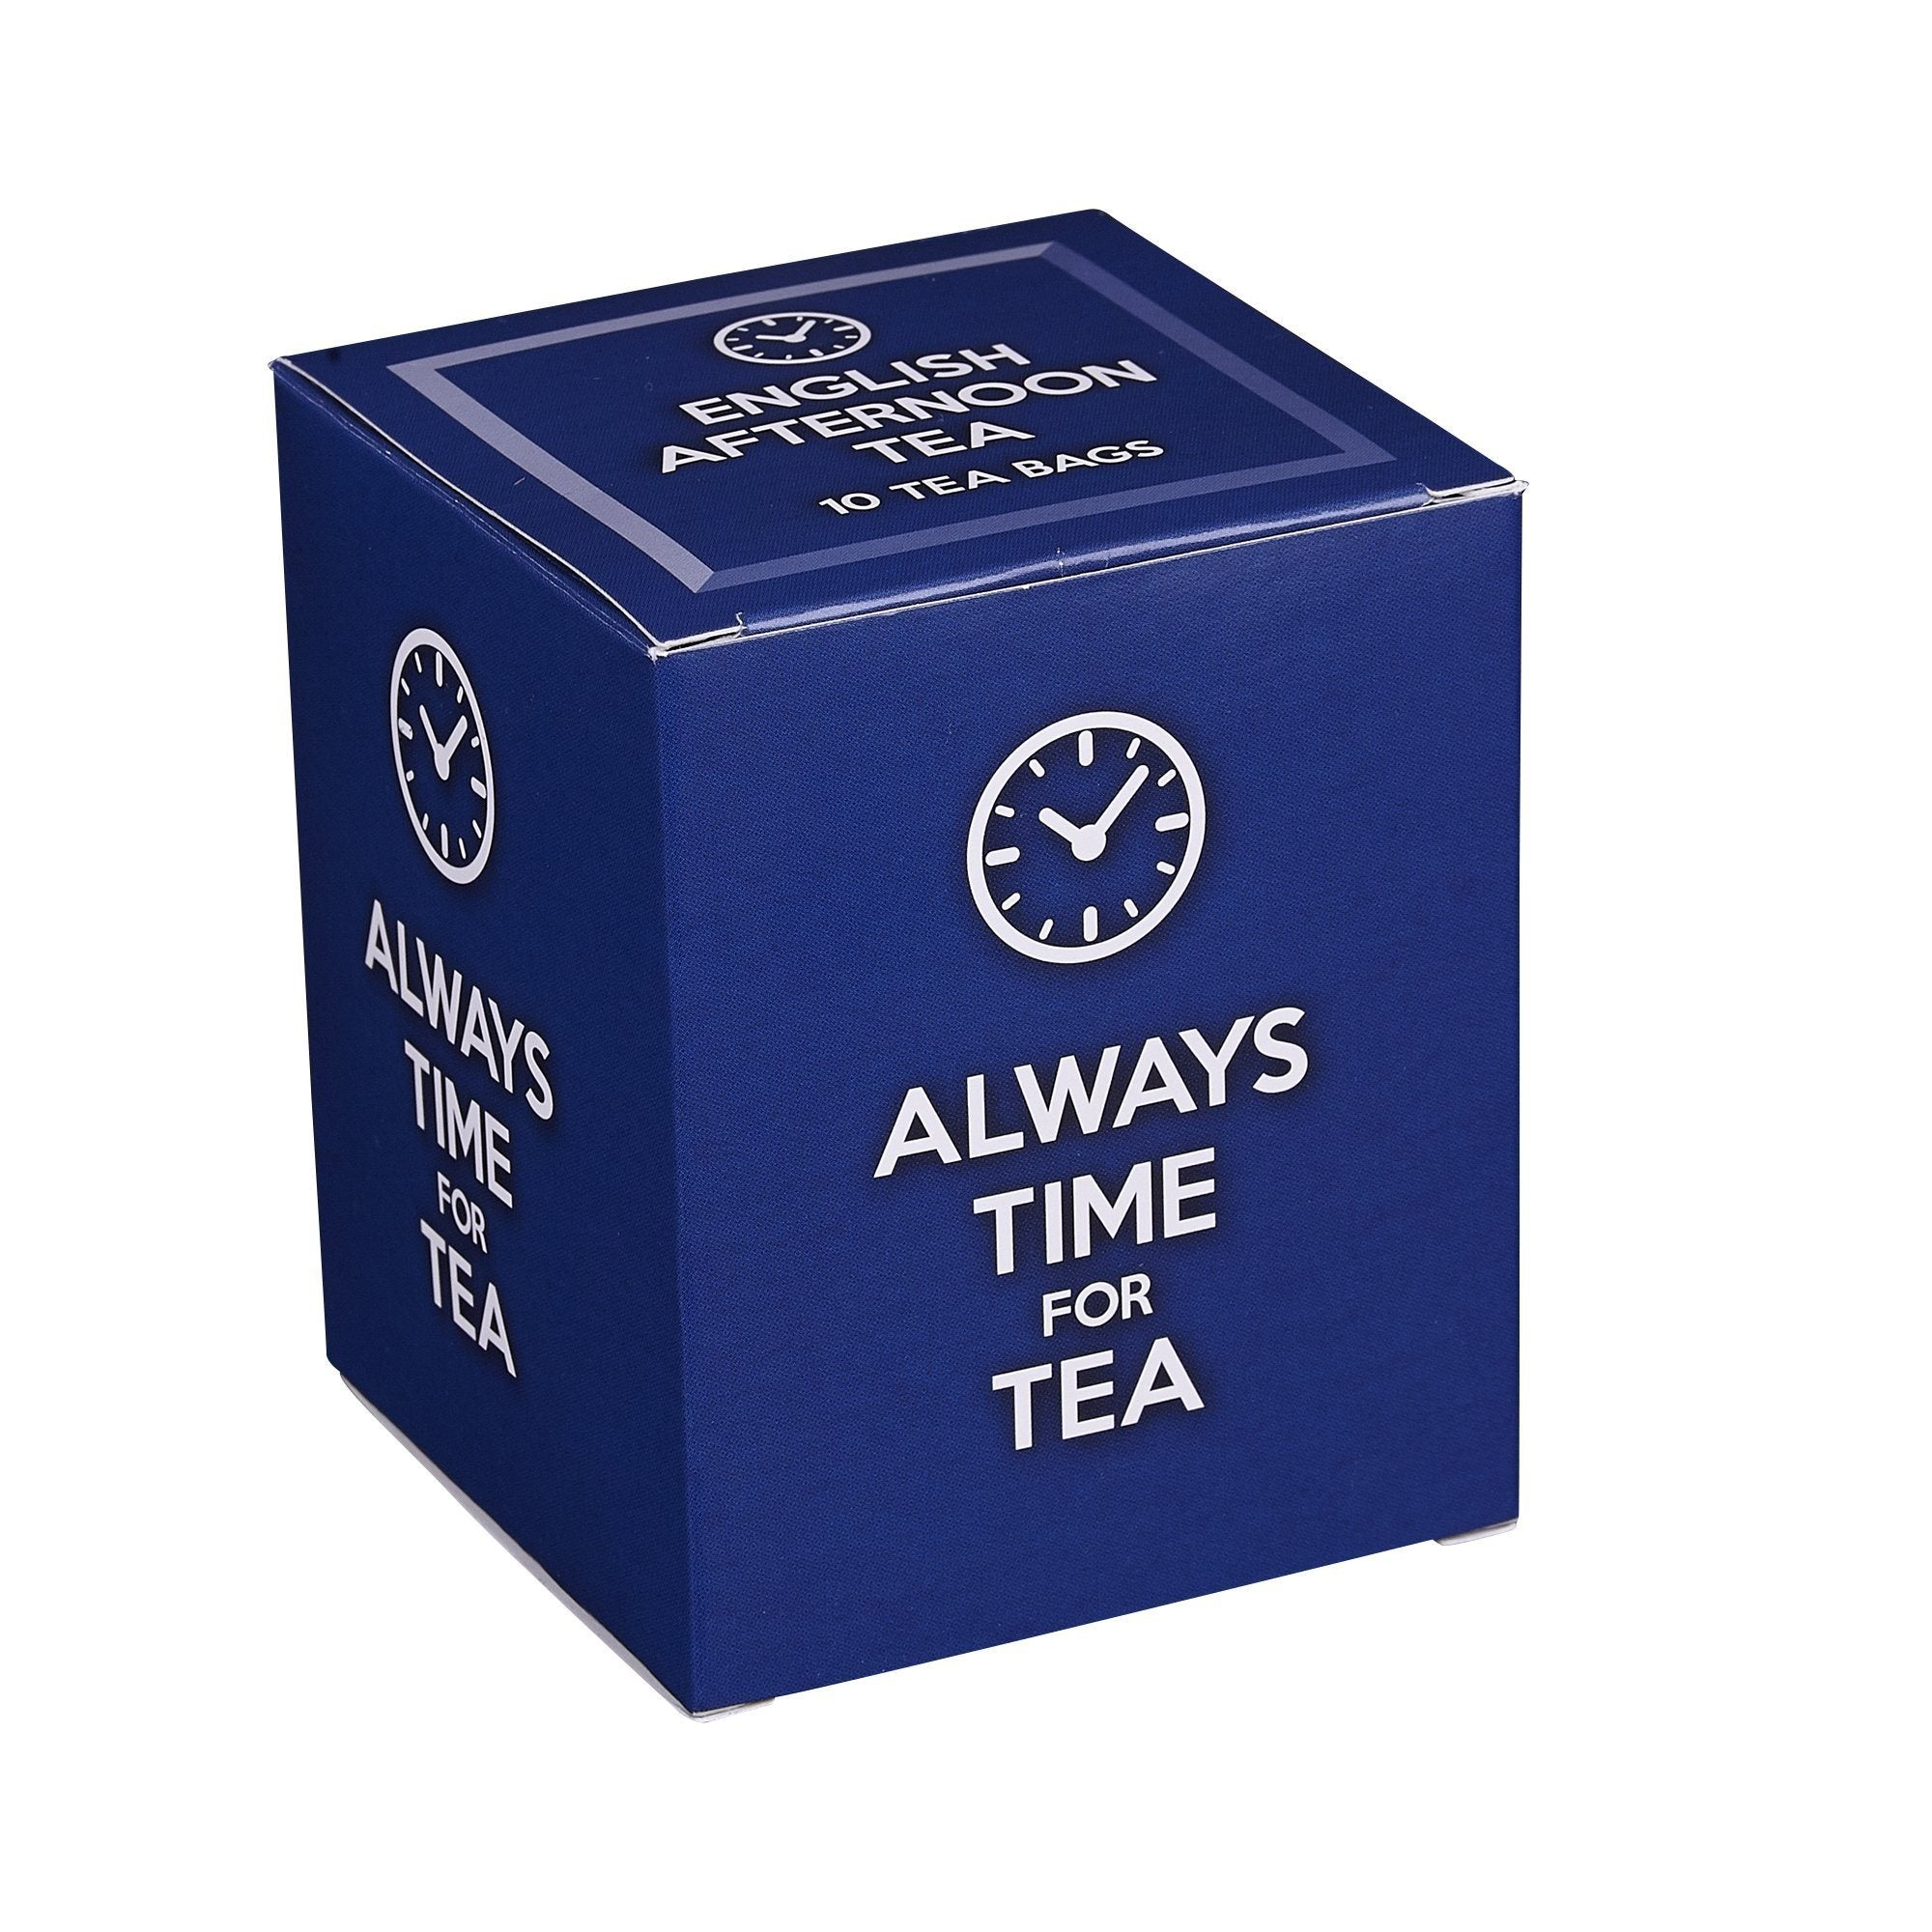 New English Teas Always Time For Tea Carton 10 Teabags Black Tea New English Teas